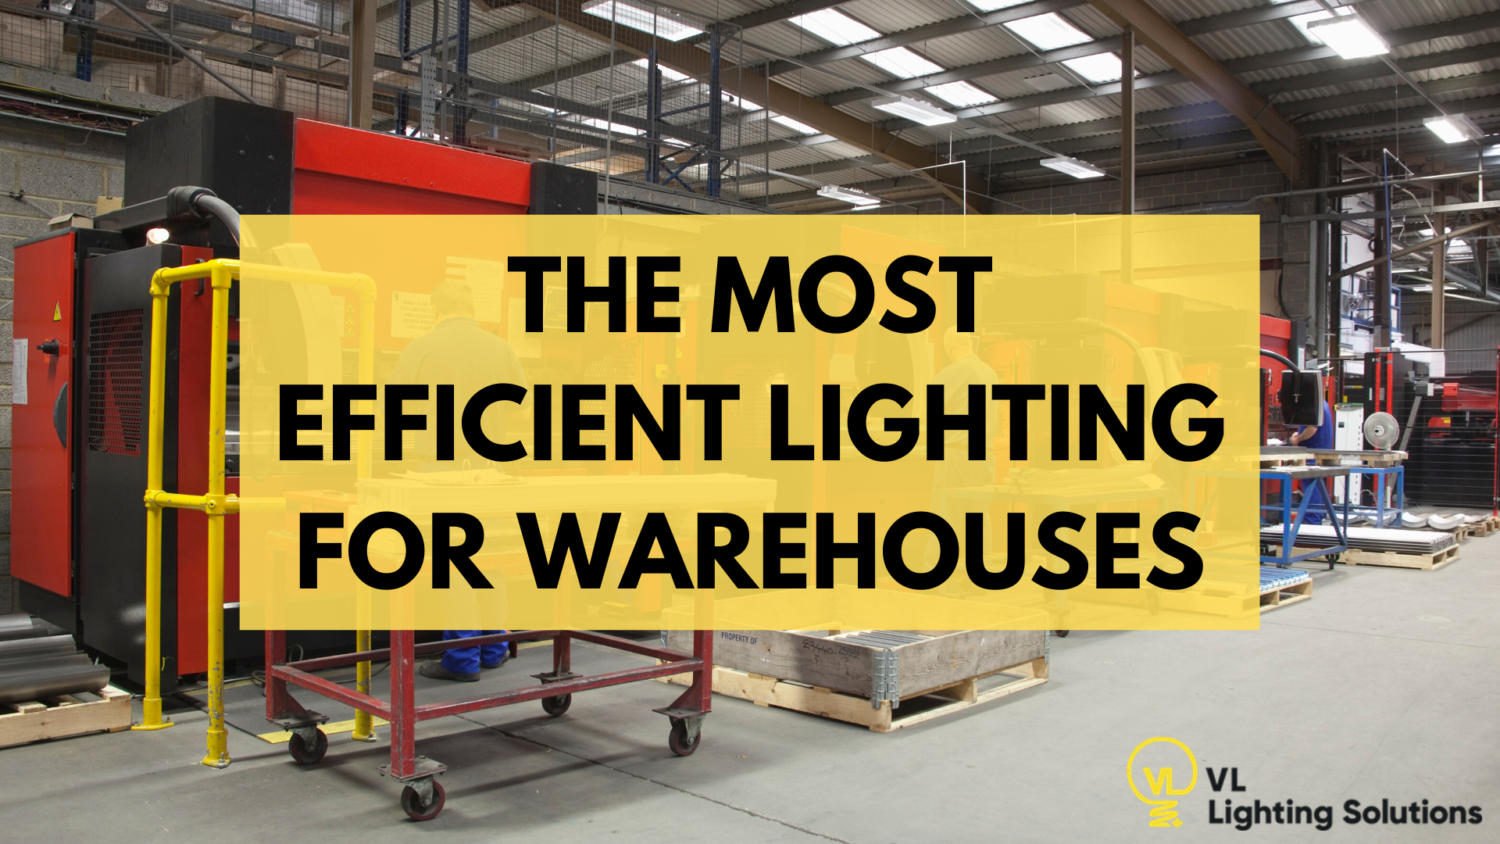 The Most Efficient Lighting for Warehouses